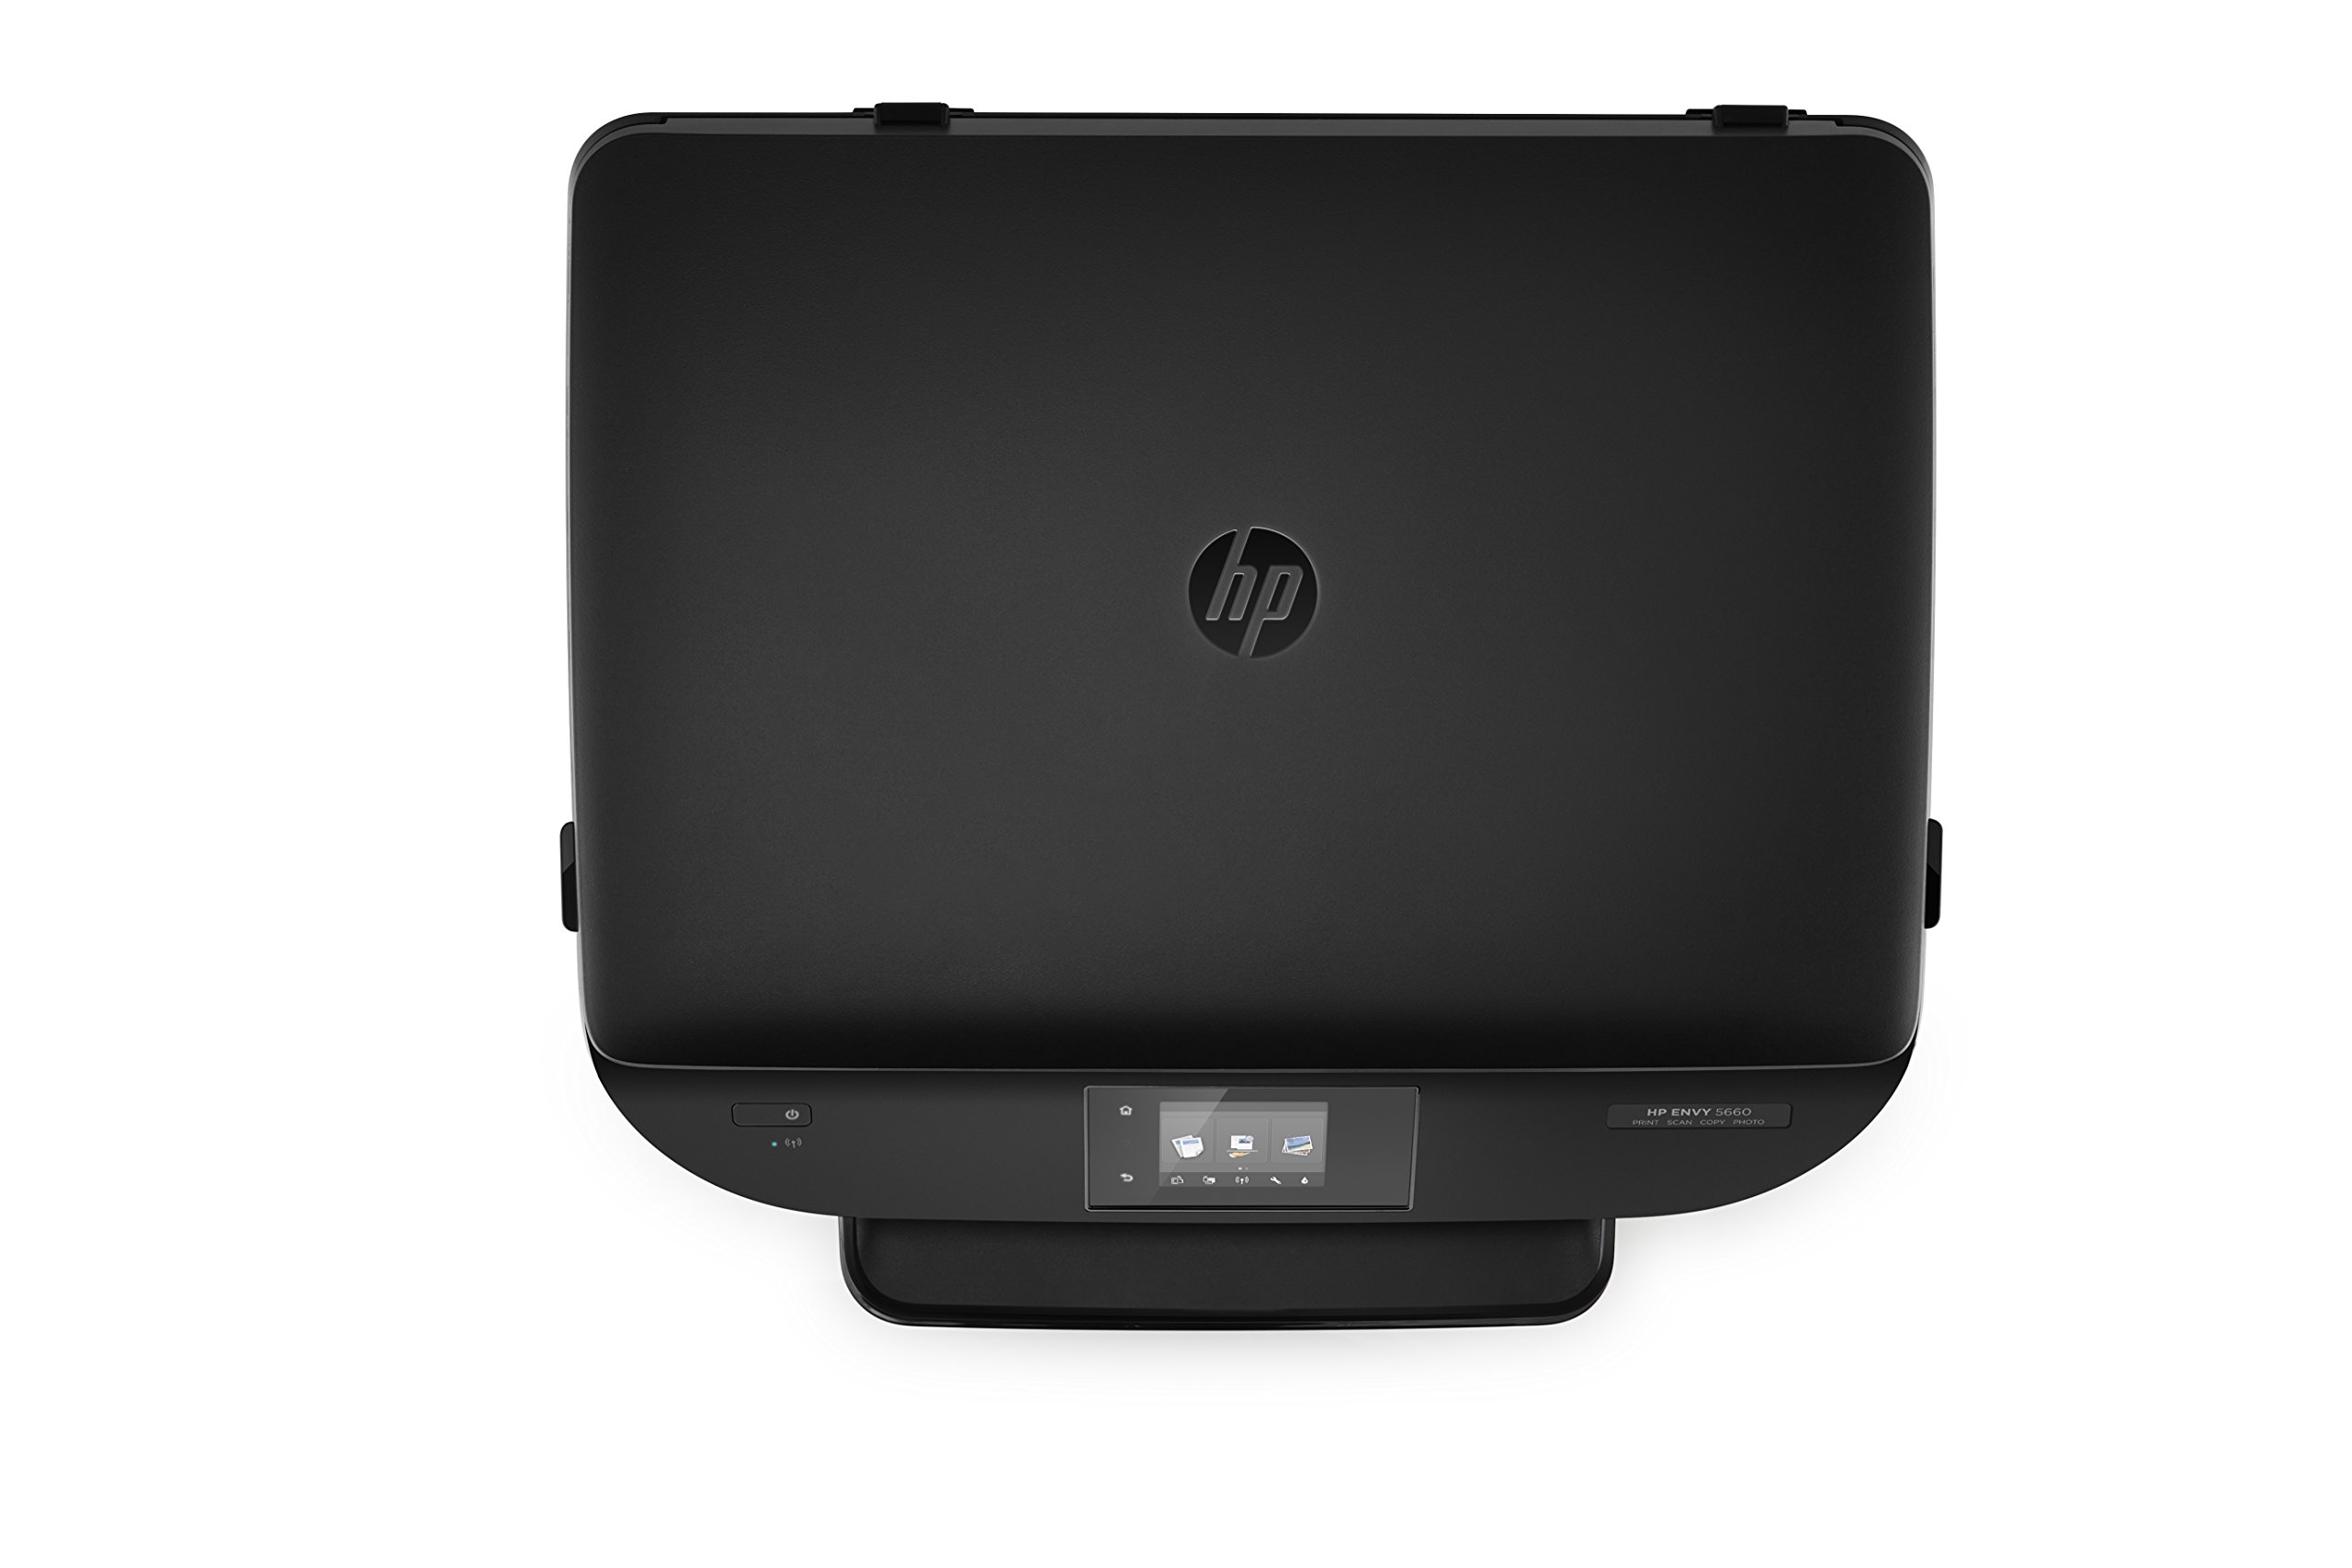 HP Envy 5660 Wireless All-in-One Photo Printer with Mobile Printing, Instant Ink Ready (F8B04AR) (Renewed) by HP (Image #5)